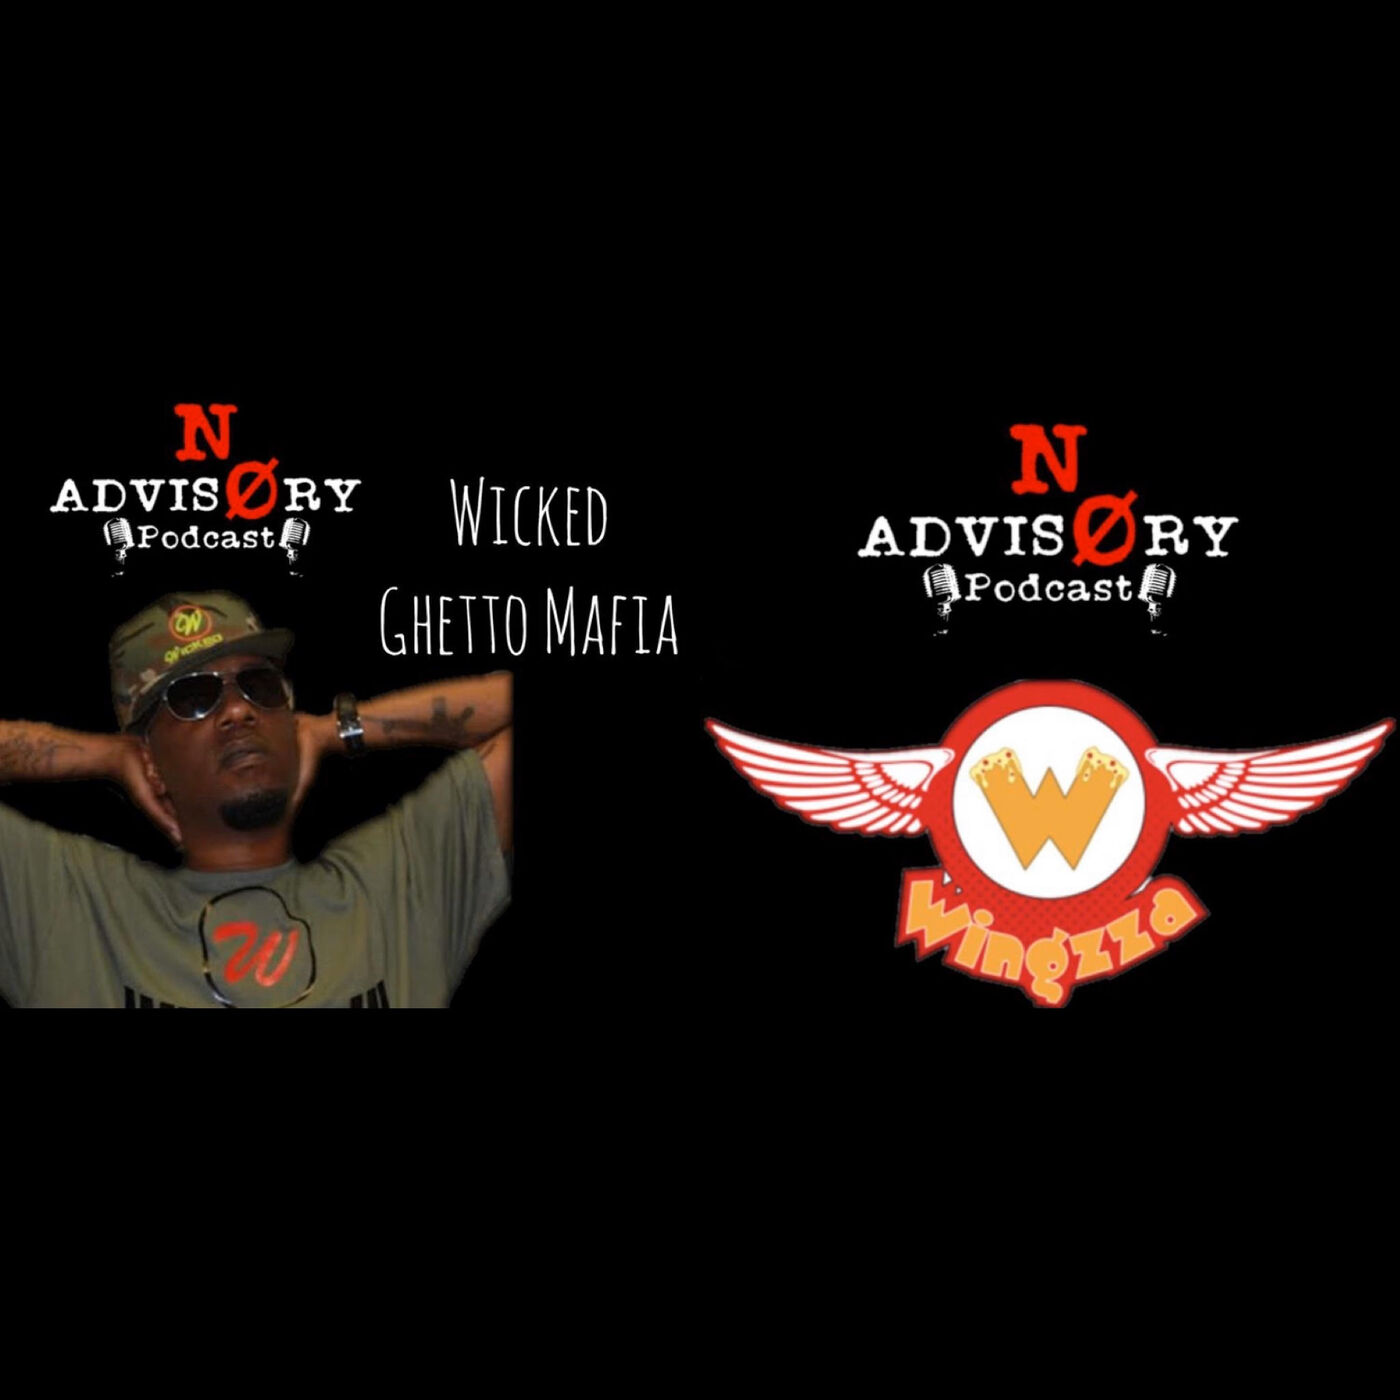 NoAdvisory EXCLUSIVE Interview w/ Wicked of Ghetto Mafia and The worlds Famous Mambo Sauce Maker Larry owner of Wingzza